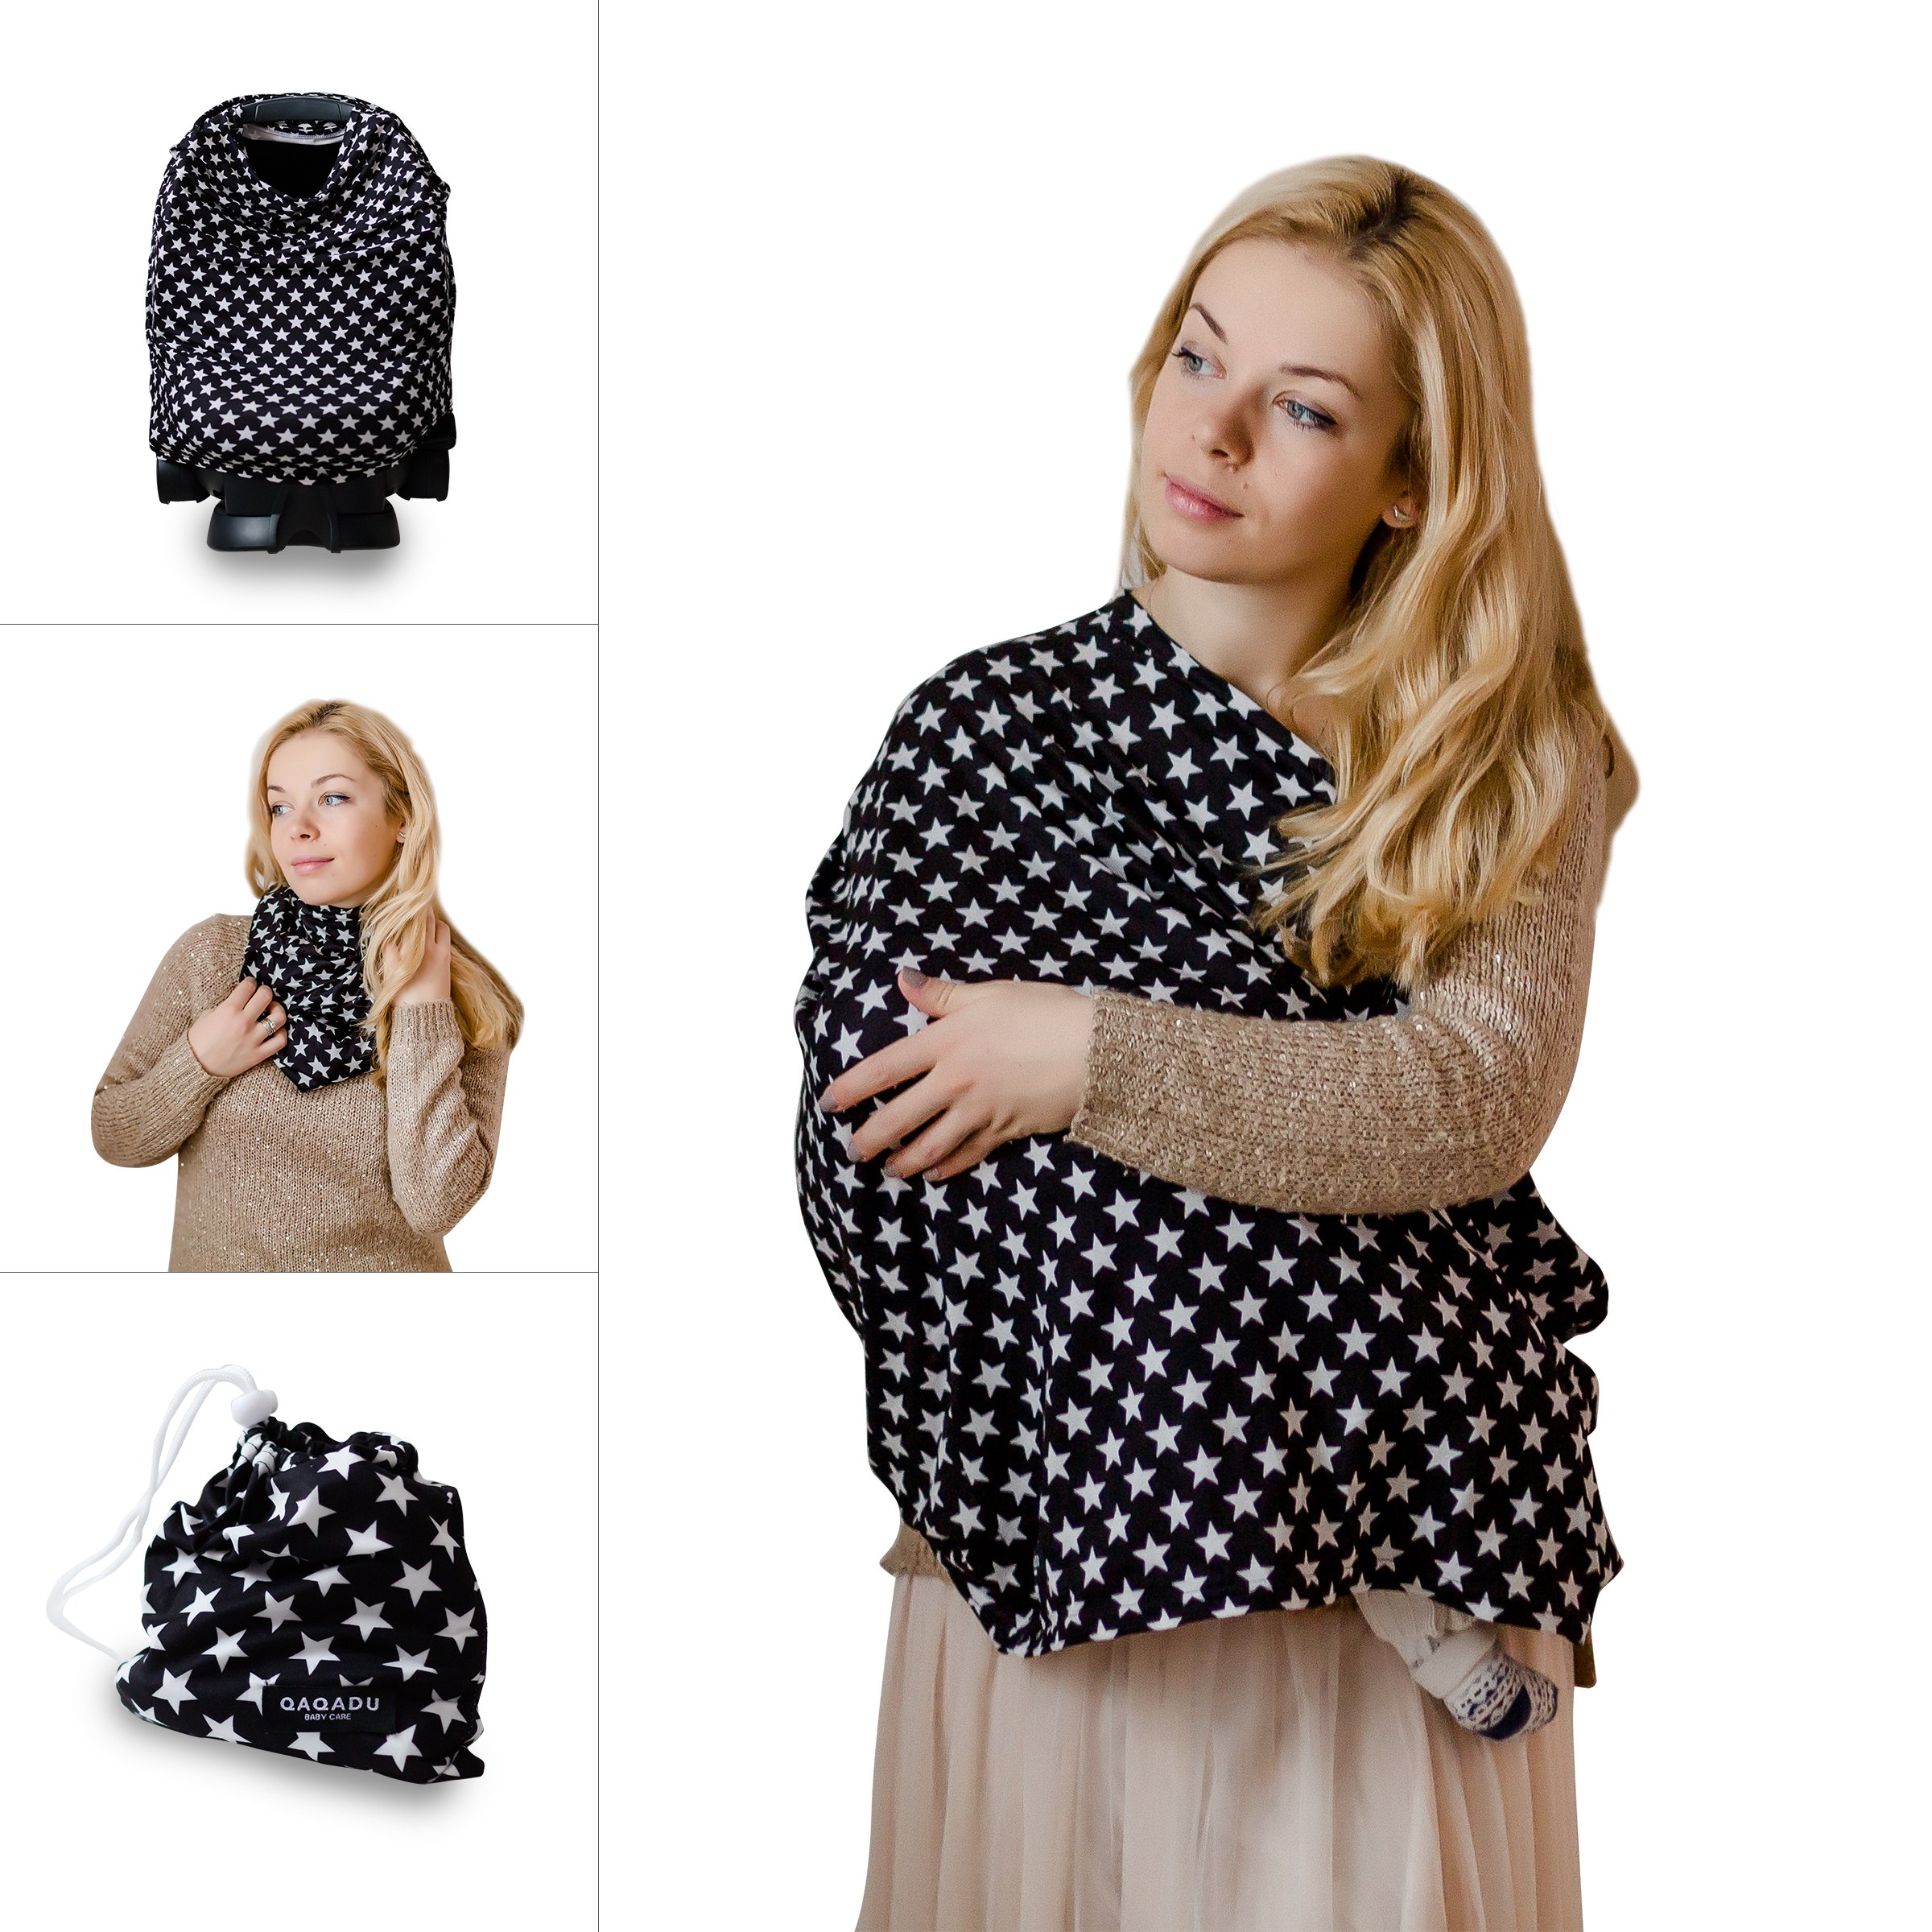 Nursing Cover - Black Stars - Breastfeeding Cover Scarf - Baby Car Seat Canopy, Shopping Cart, Stroller, Carseat Covers for Girls and Boys